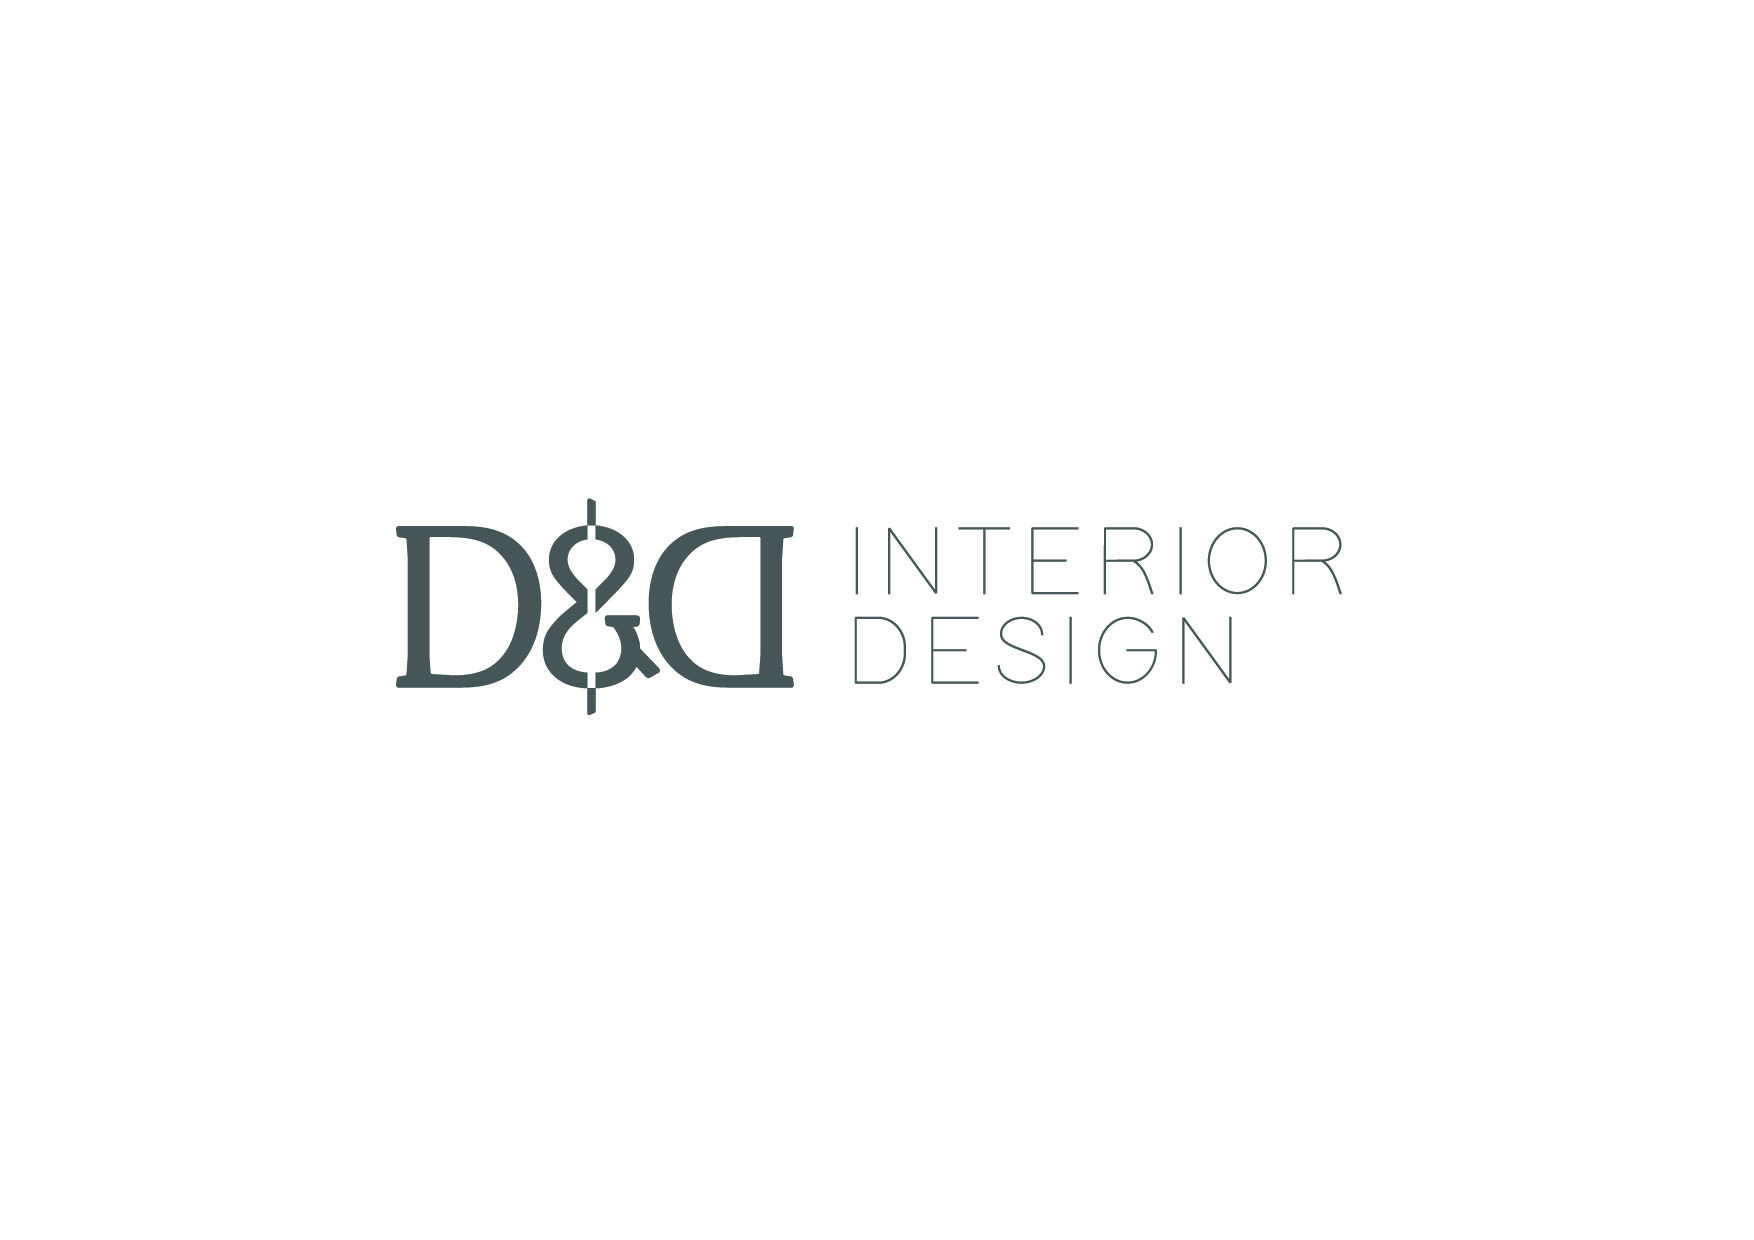 D&D - Design & Décor